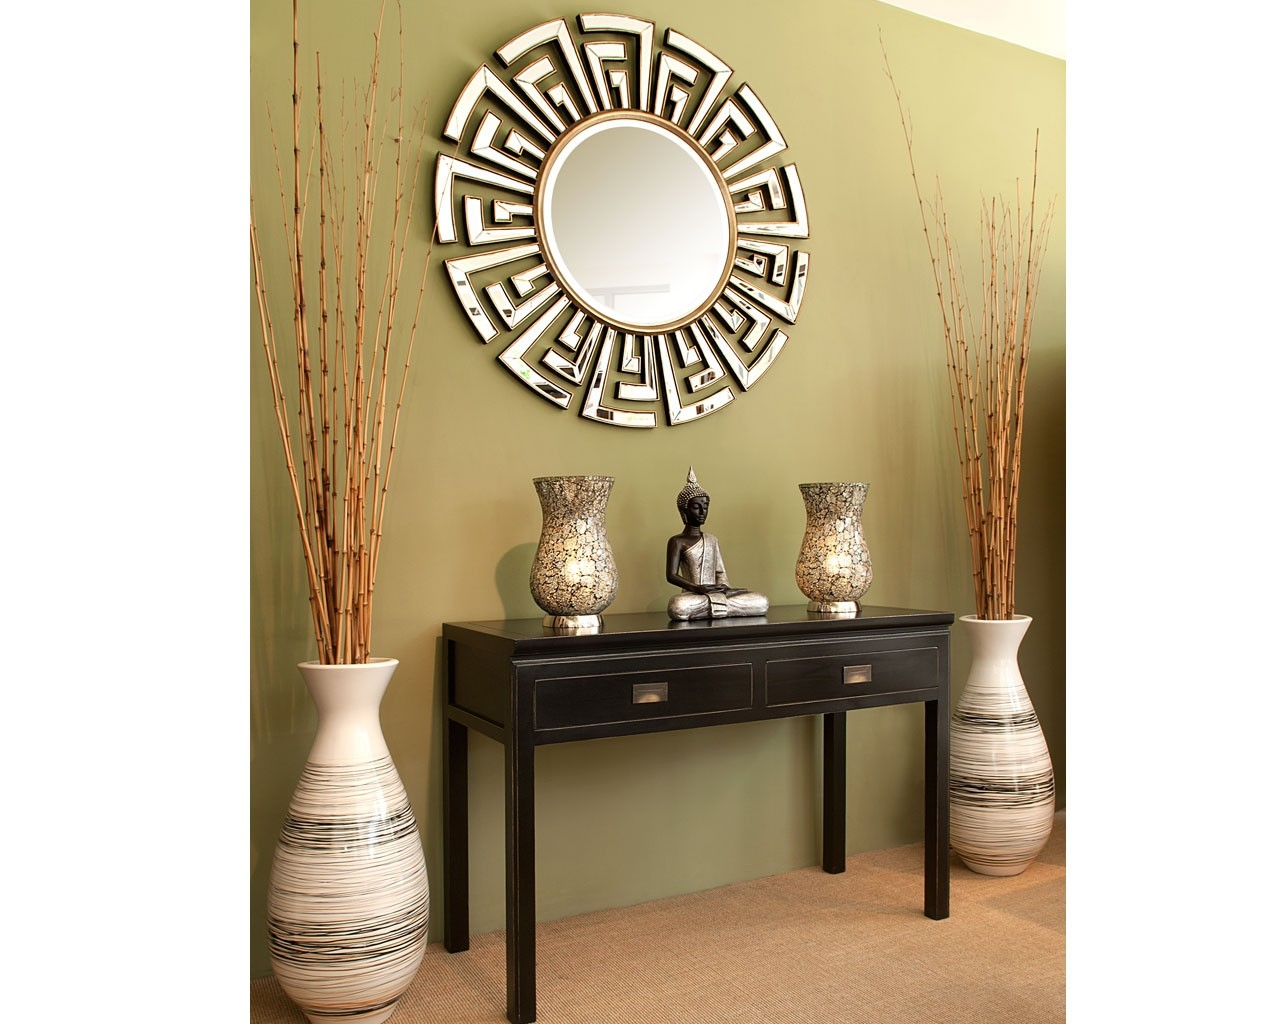 Contemporary Art Deco Round Mirror Statement Circular Mirrors Regarding Deco Mirrors (Image 11 of 15)